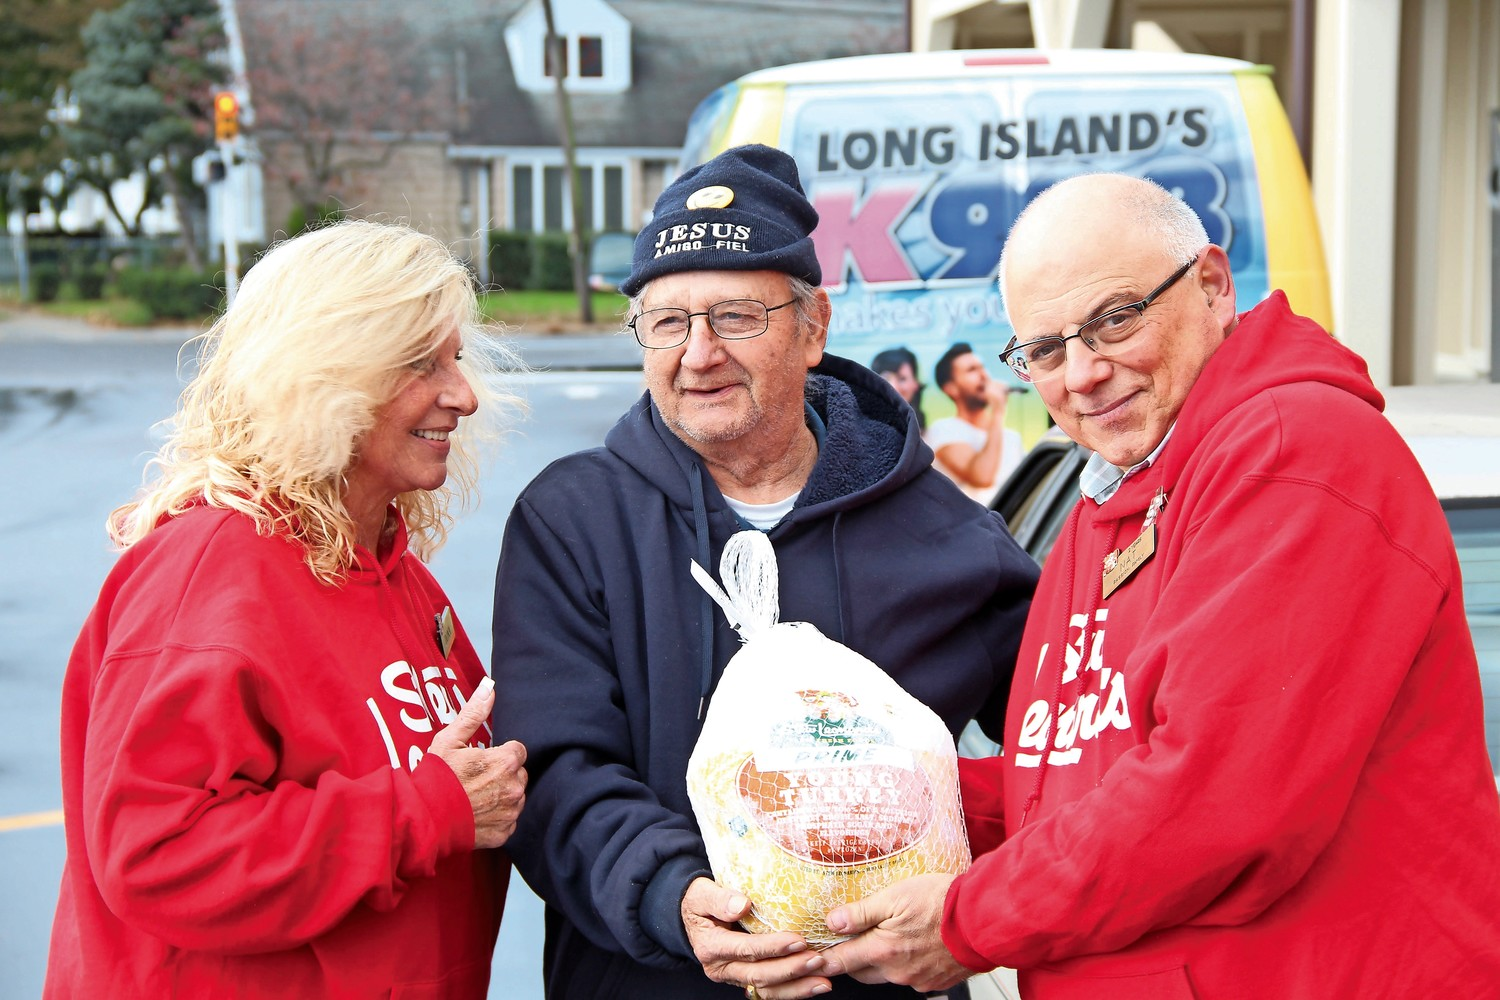 Dona Seal and Nat Zappia, right, of Stew Leonard's, gave the last donated turkey to Ray Vorhess, of the Calvary Lutheran Church in East Meadow.